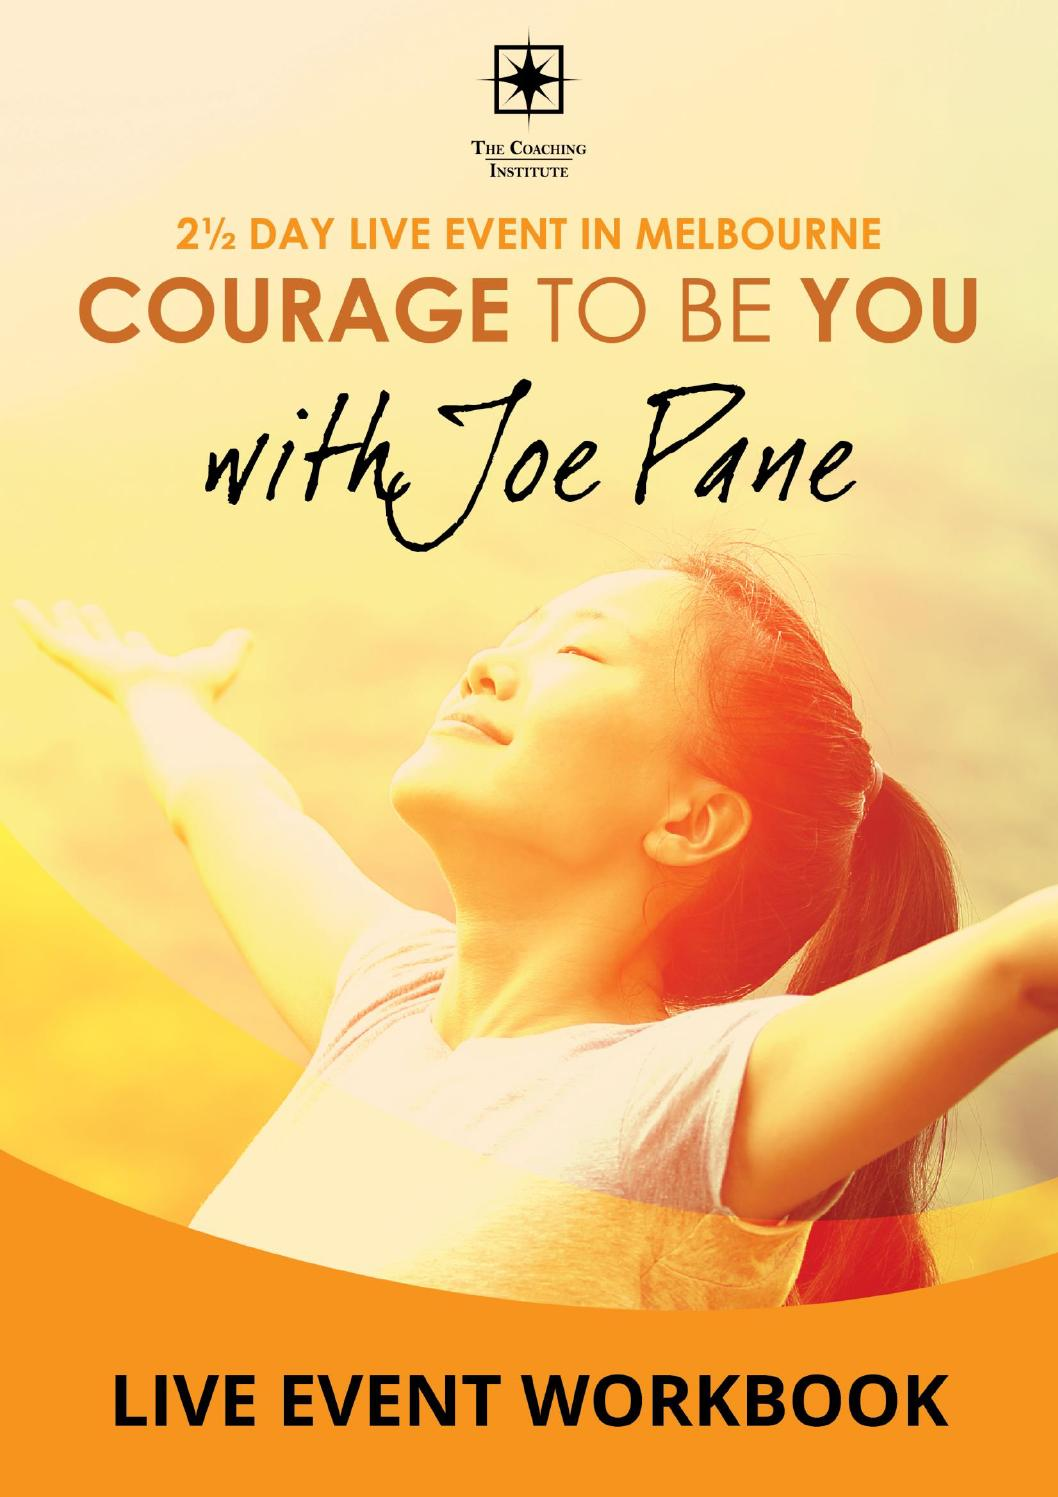 Workbooks workbook live : TCI Courage to be you event workbook by The Coaching Institute - issuu